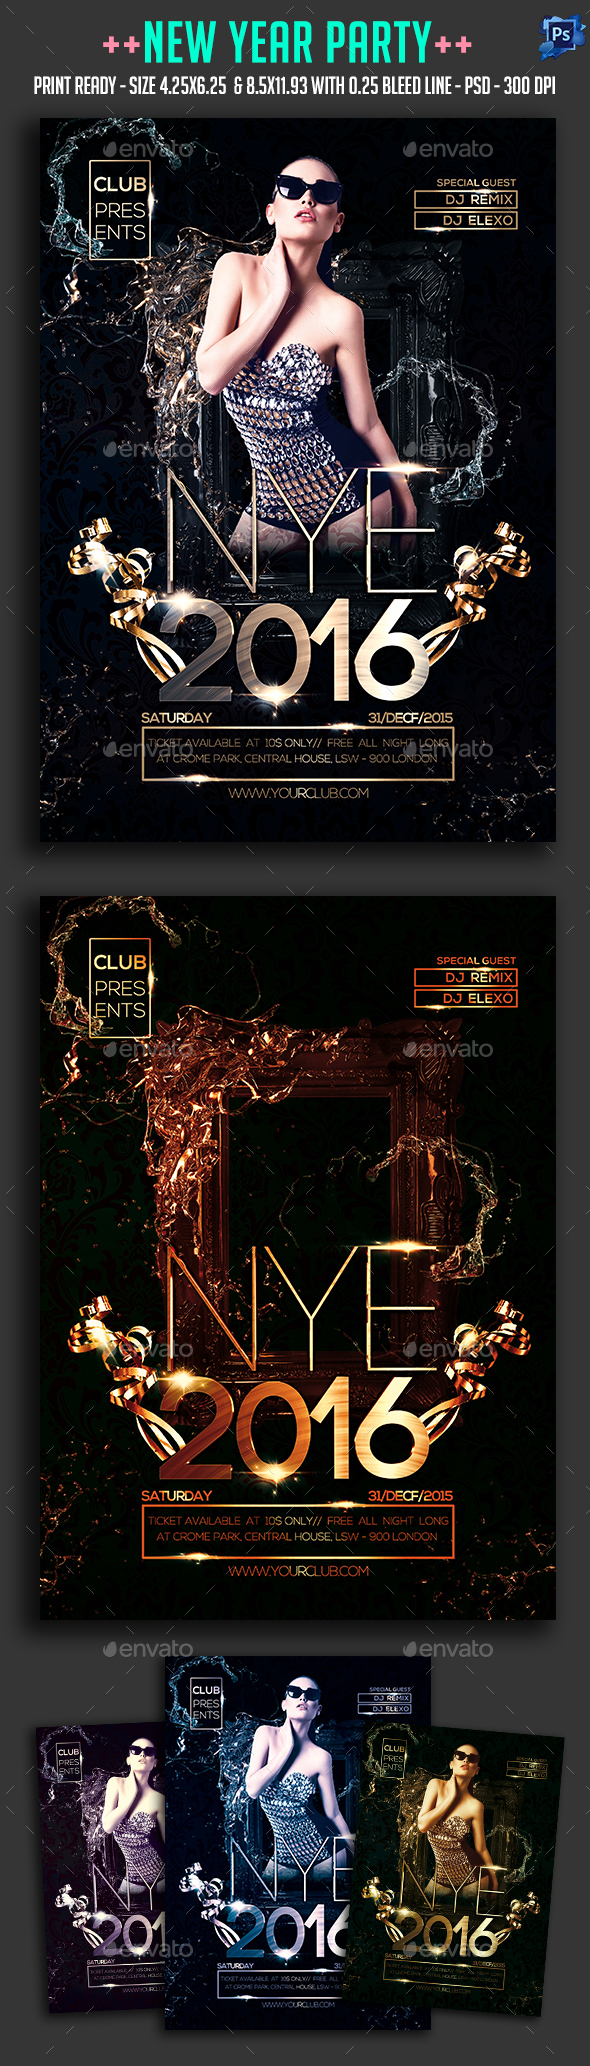 2021 New Year Party Flyer Party flyer, New years party